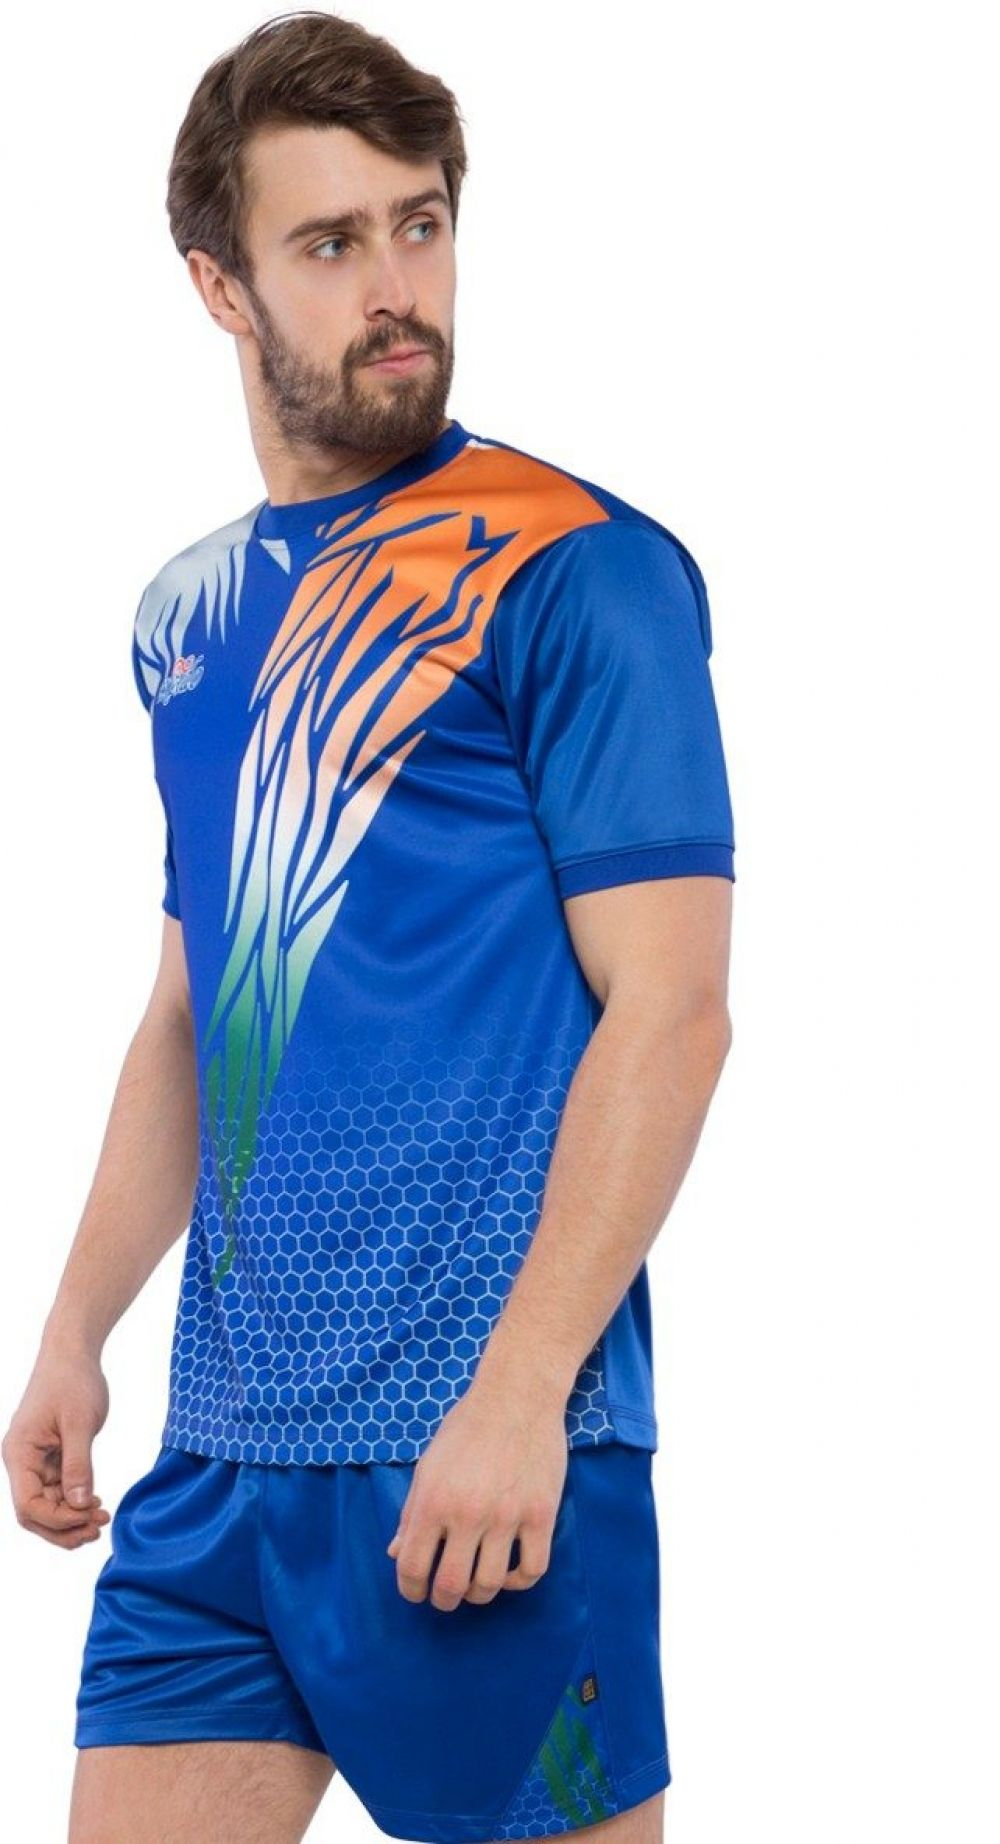 Adorable Kabaddi Jersey And Short Excedo Kbd07 In 2020 Cricket Dress Mens Outfits Royal Blue Color